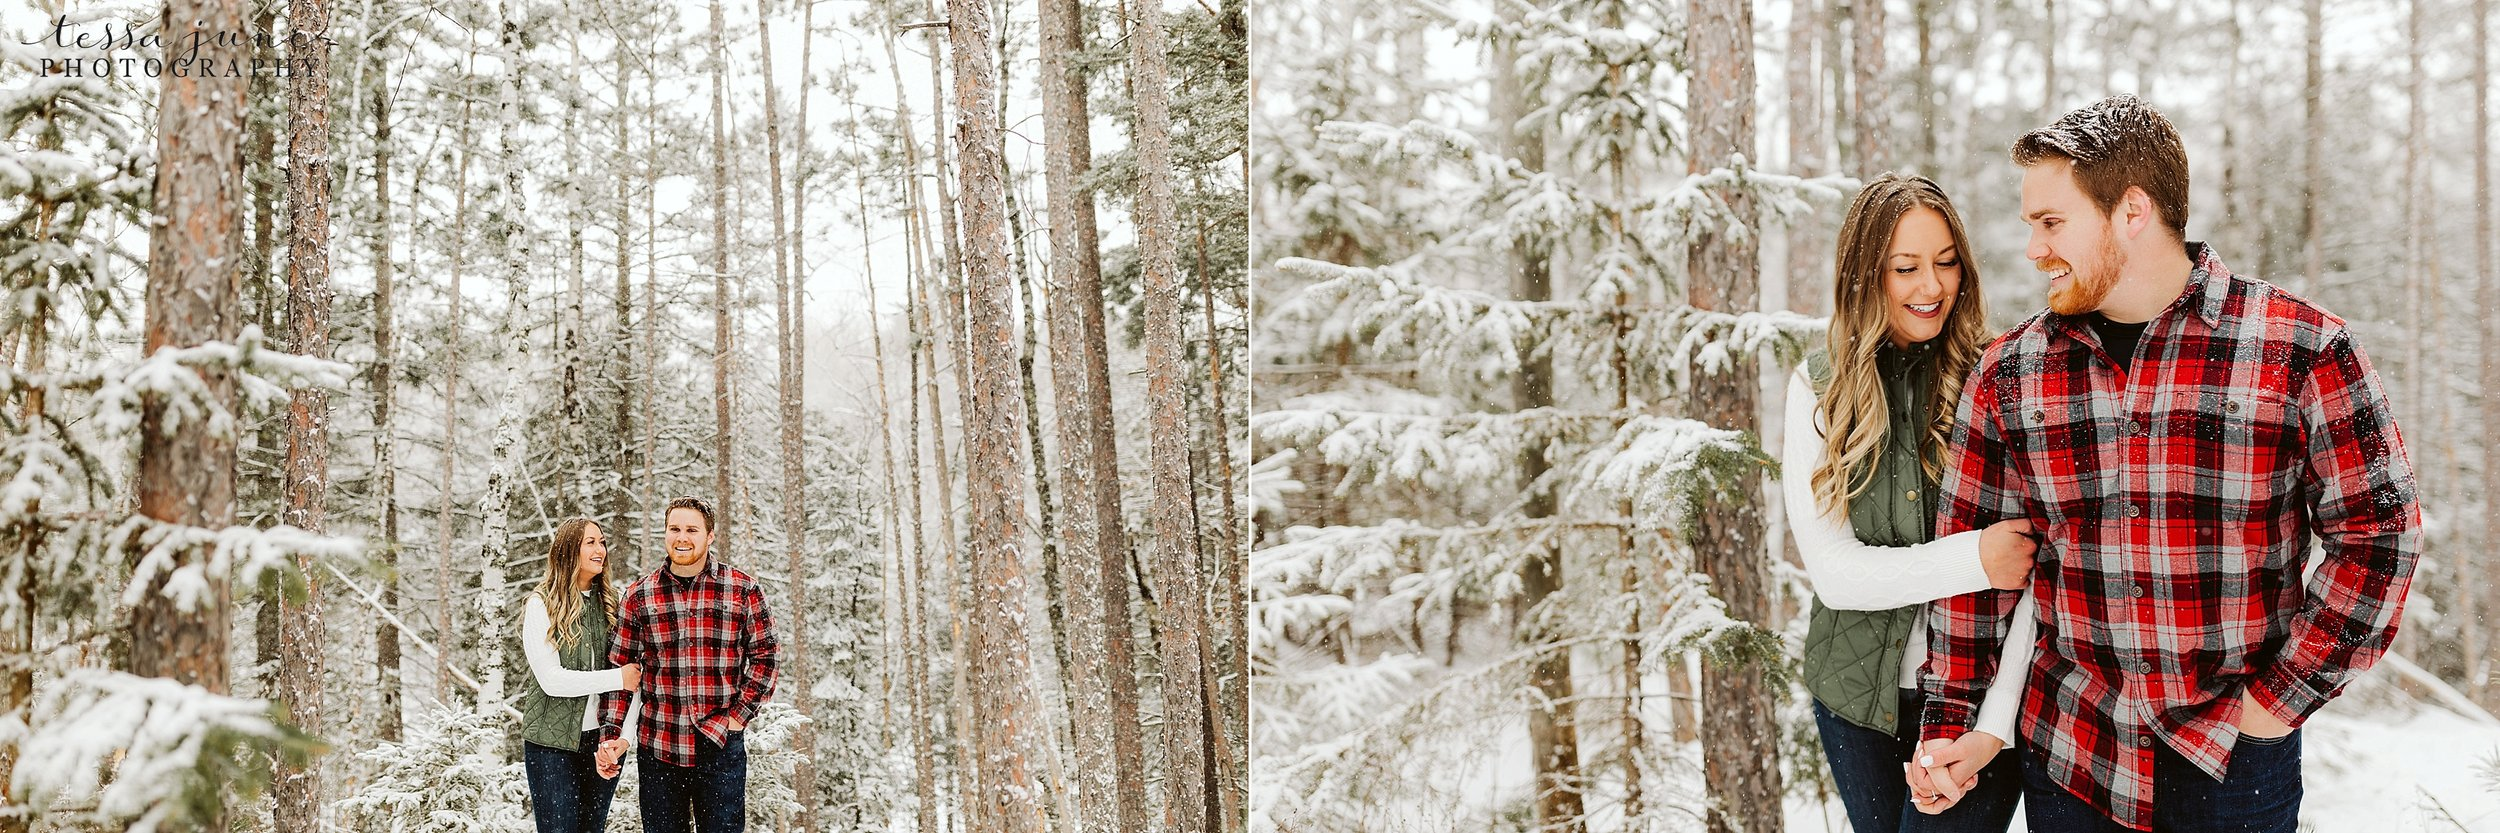 duluth-winter-engagement-forest-photos-during-snow-storm-12.jpg